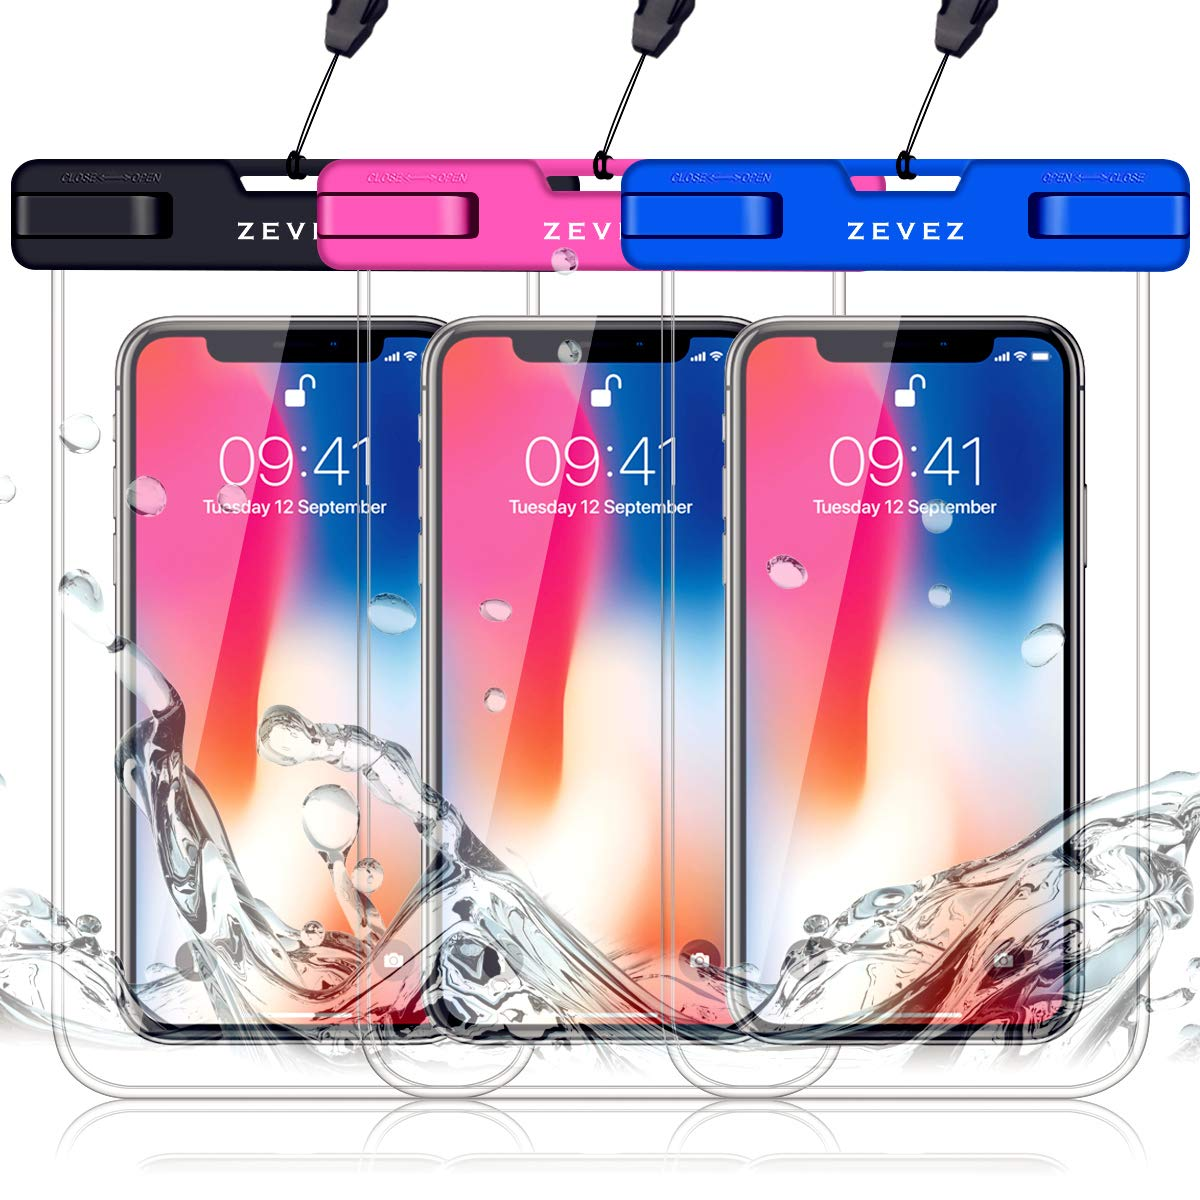 3 Pack Universal Waterproof Phone Pouch, Dry Bag for Cell Phone - Summer Water Sports and Dive for iPhone Xs Max XR X 8 7 6S Plus, Galaxy S10 Plus S10e S9, Pixel 3 2 XL HTC LG Sony Moto Up to 7'' by ZEVEZ